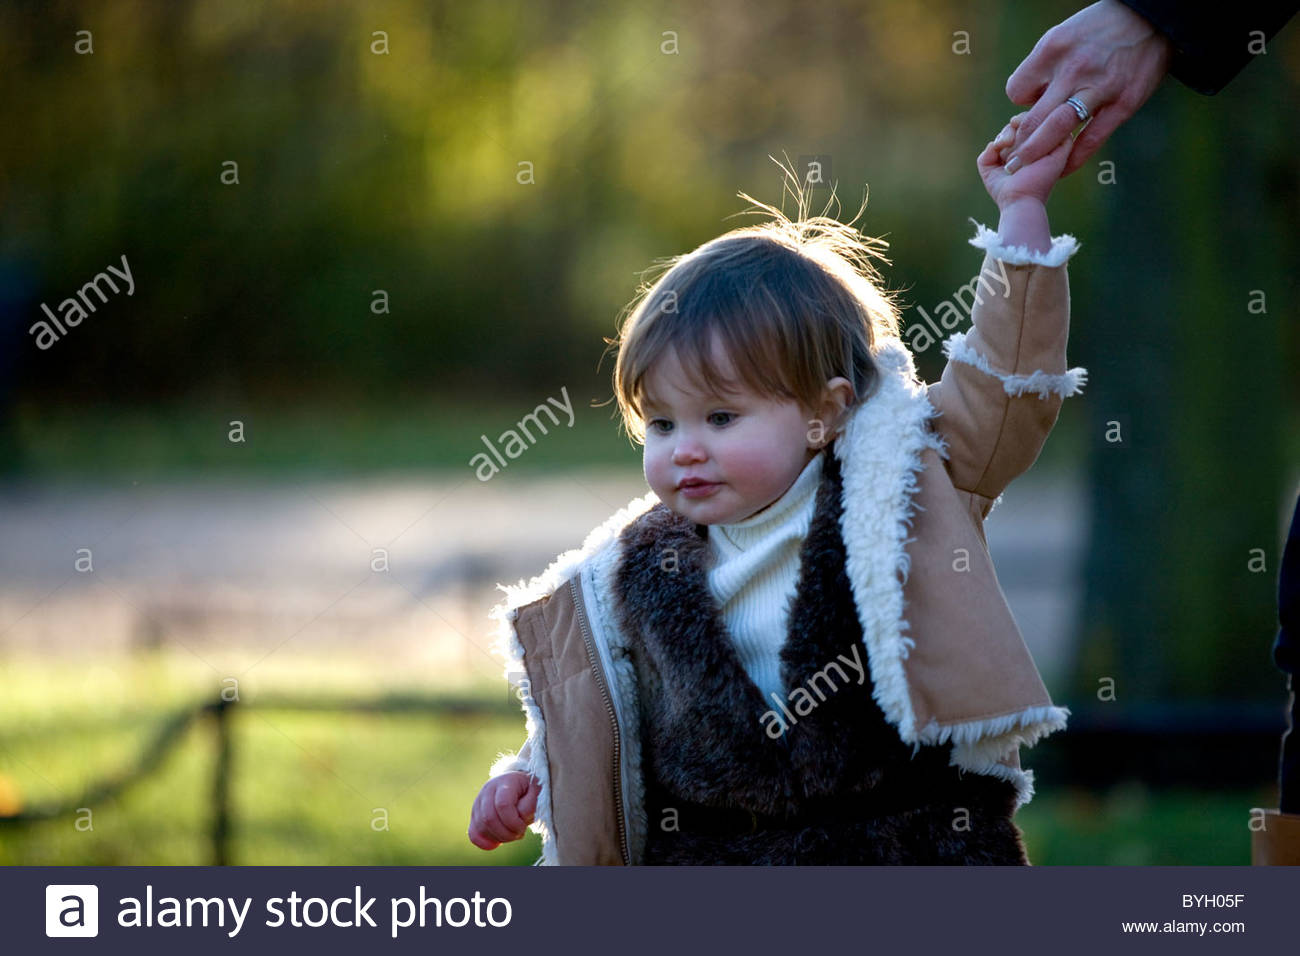 A baby girl holding her mother's hand in the park - Stock Image